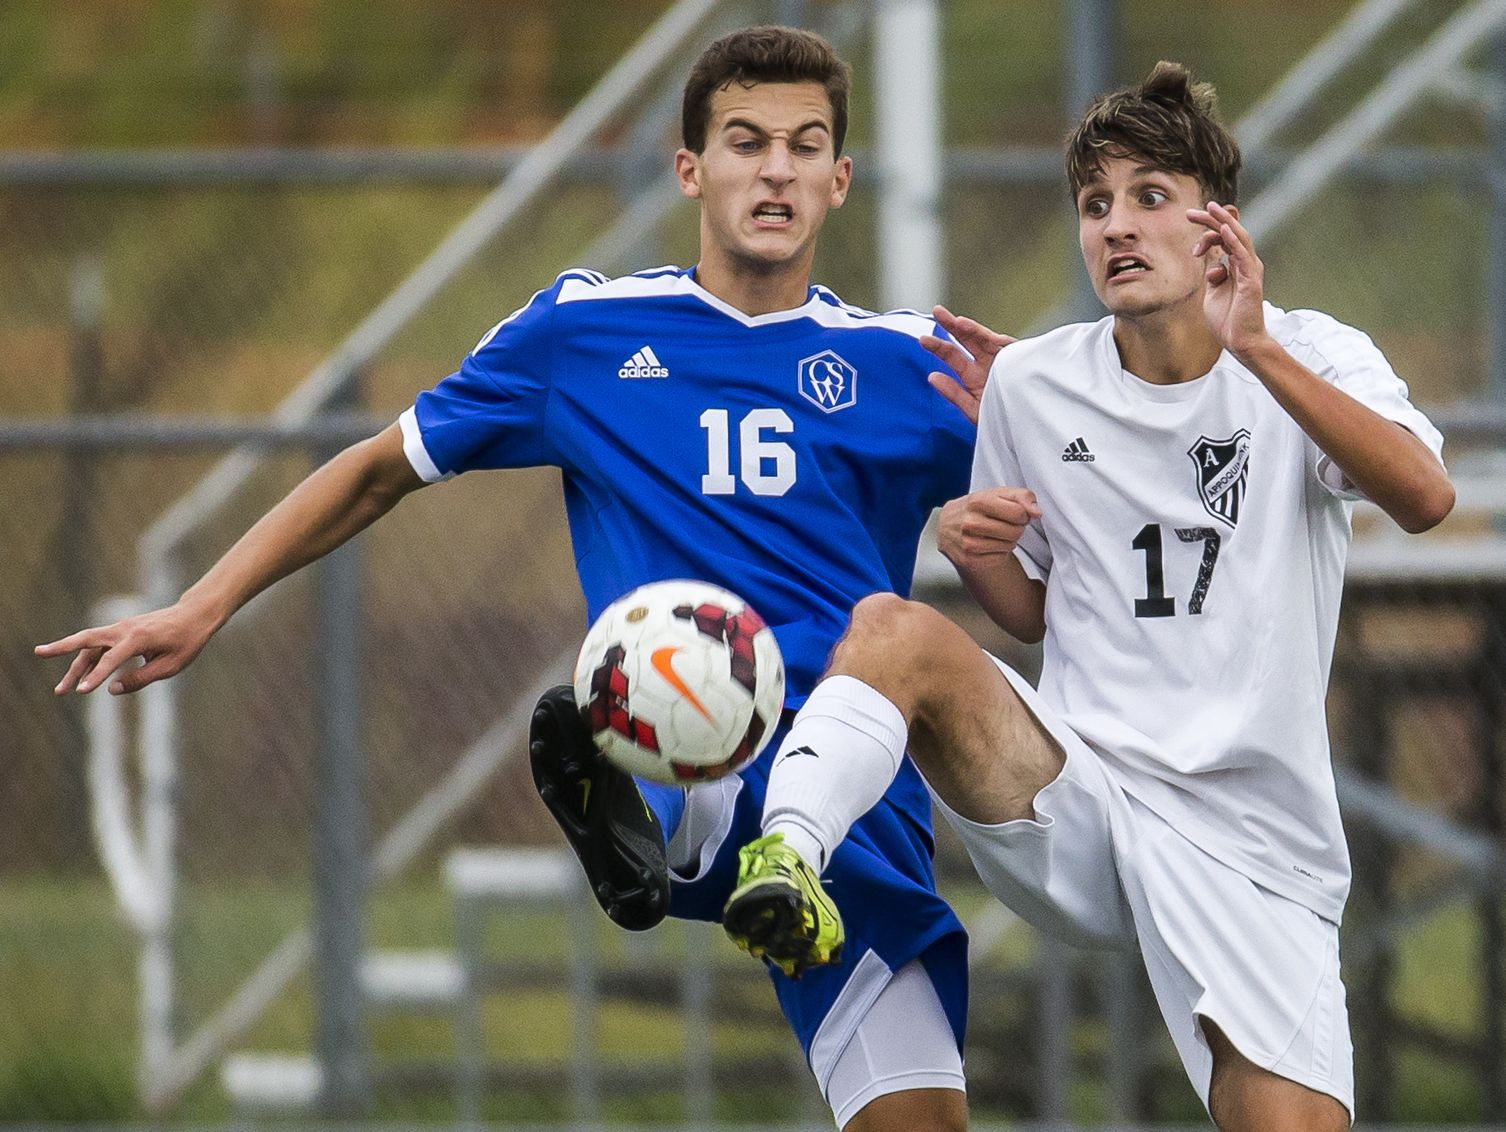 Charter's Andrew Amato (No. 16) and Appoquinimink's Seth Hubbard (No. 17) fight for the ball in the first half of Appoquinimink's 1-0 win over Charter School of Wilmington at Appoquinimink High School in Middletown on Tuesday afternoon.